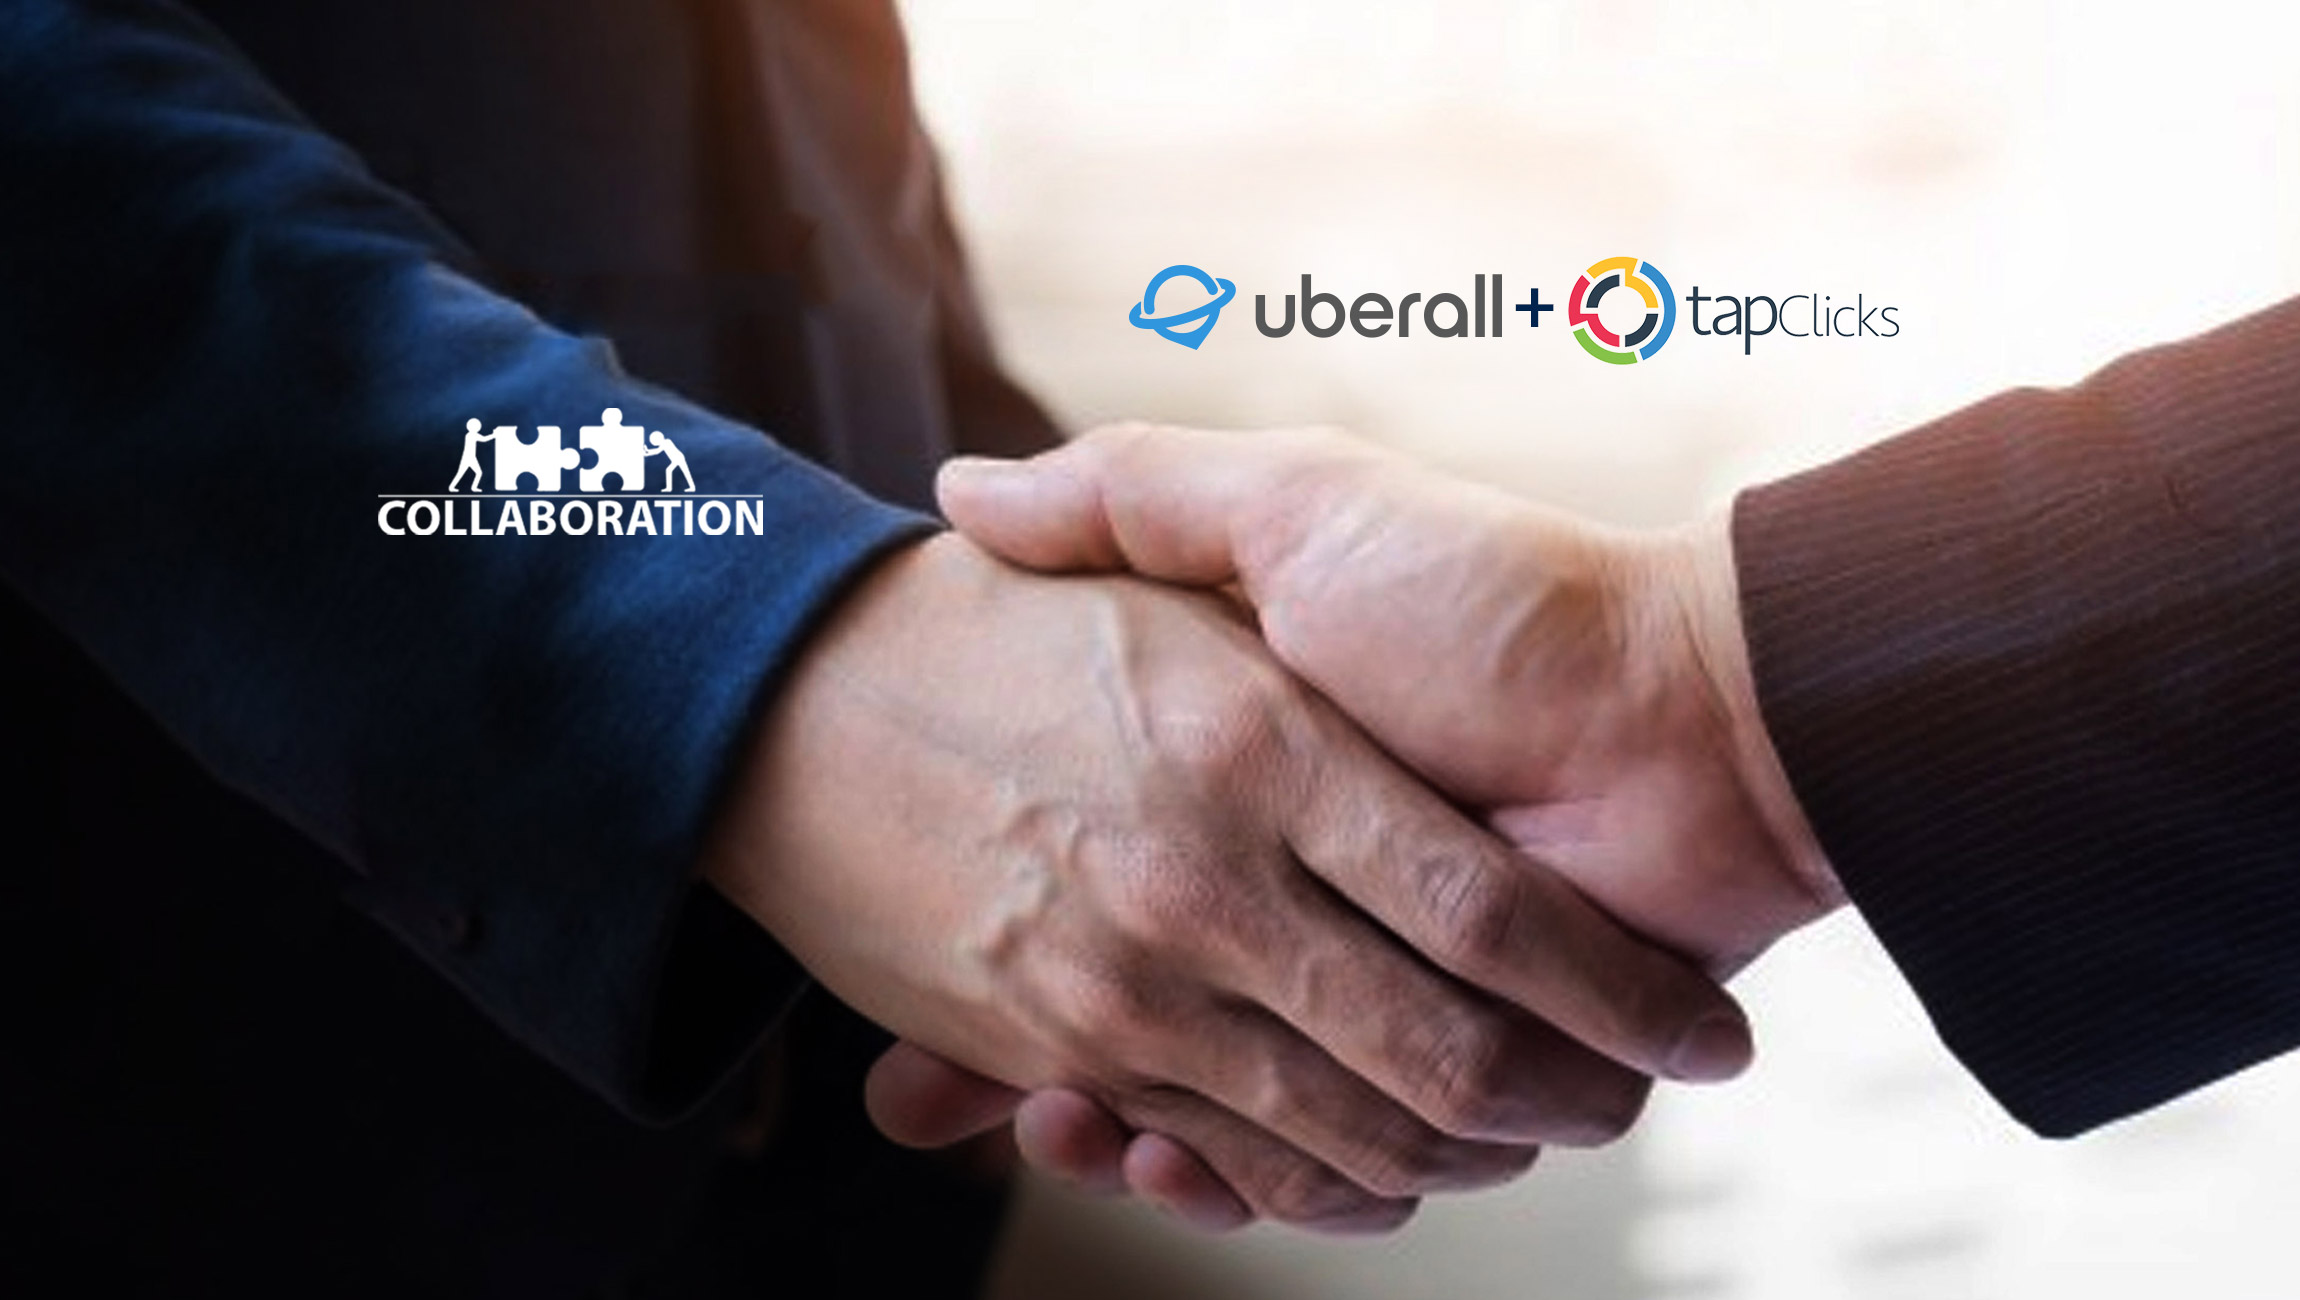 TapClicks Welcomes Uberall to its Partner Program